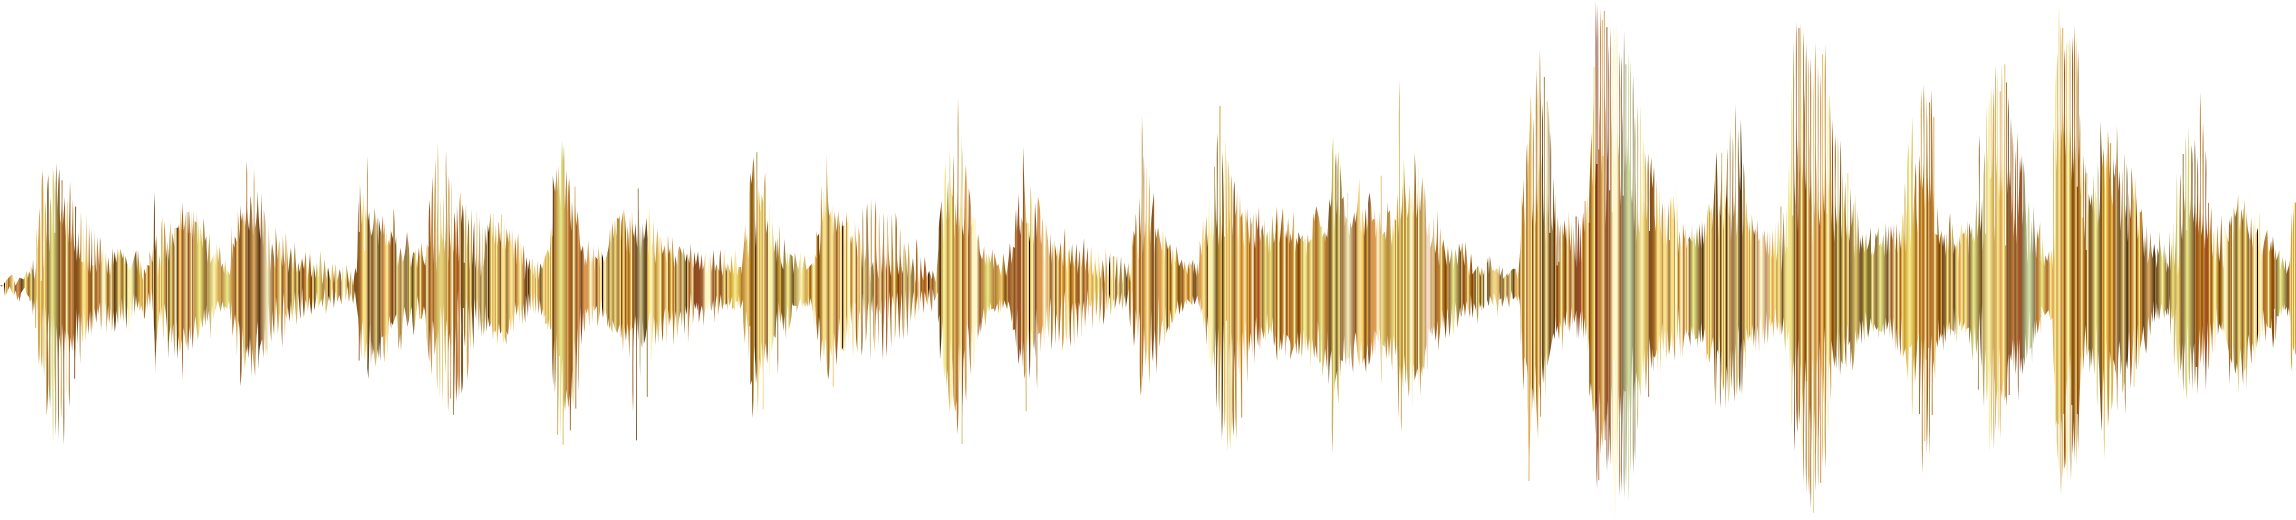 Clipart waves yellow. Gold sound wave no